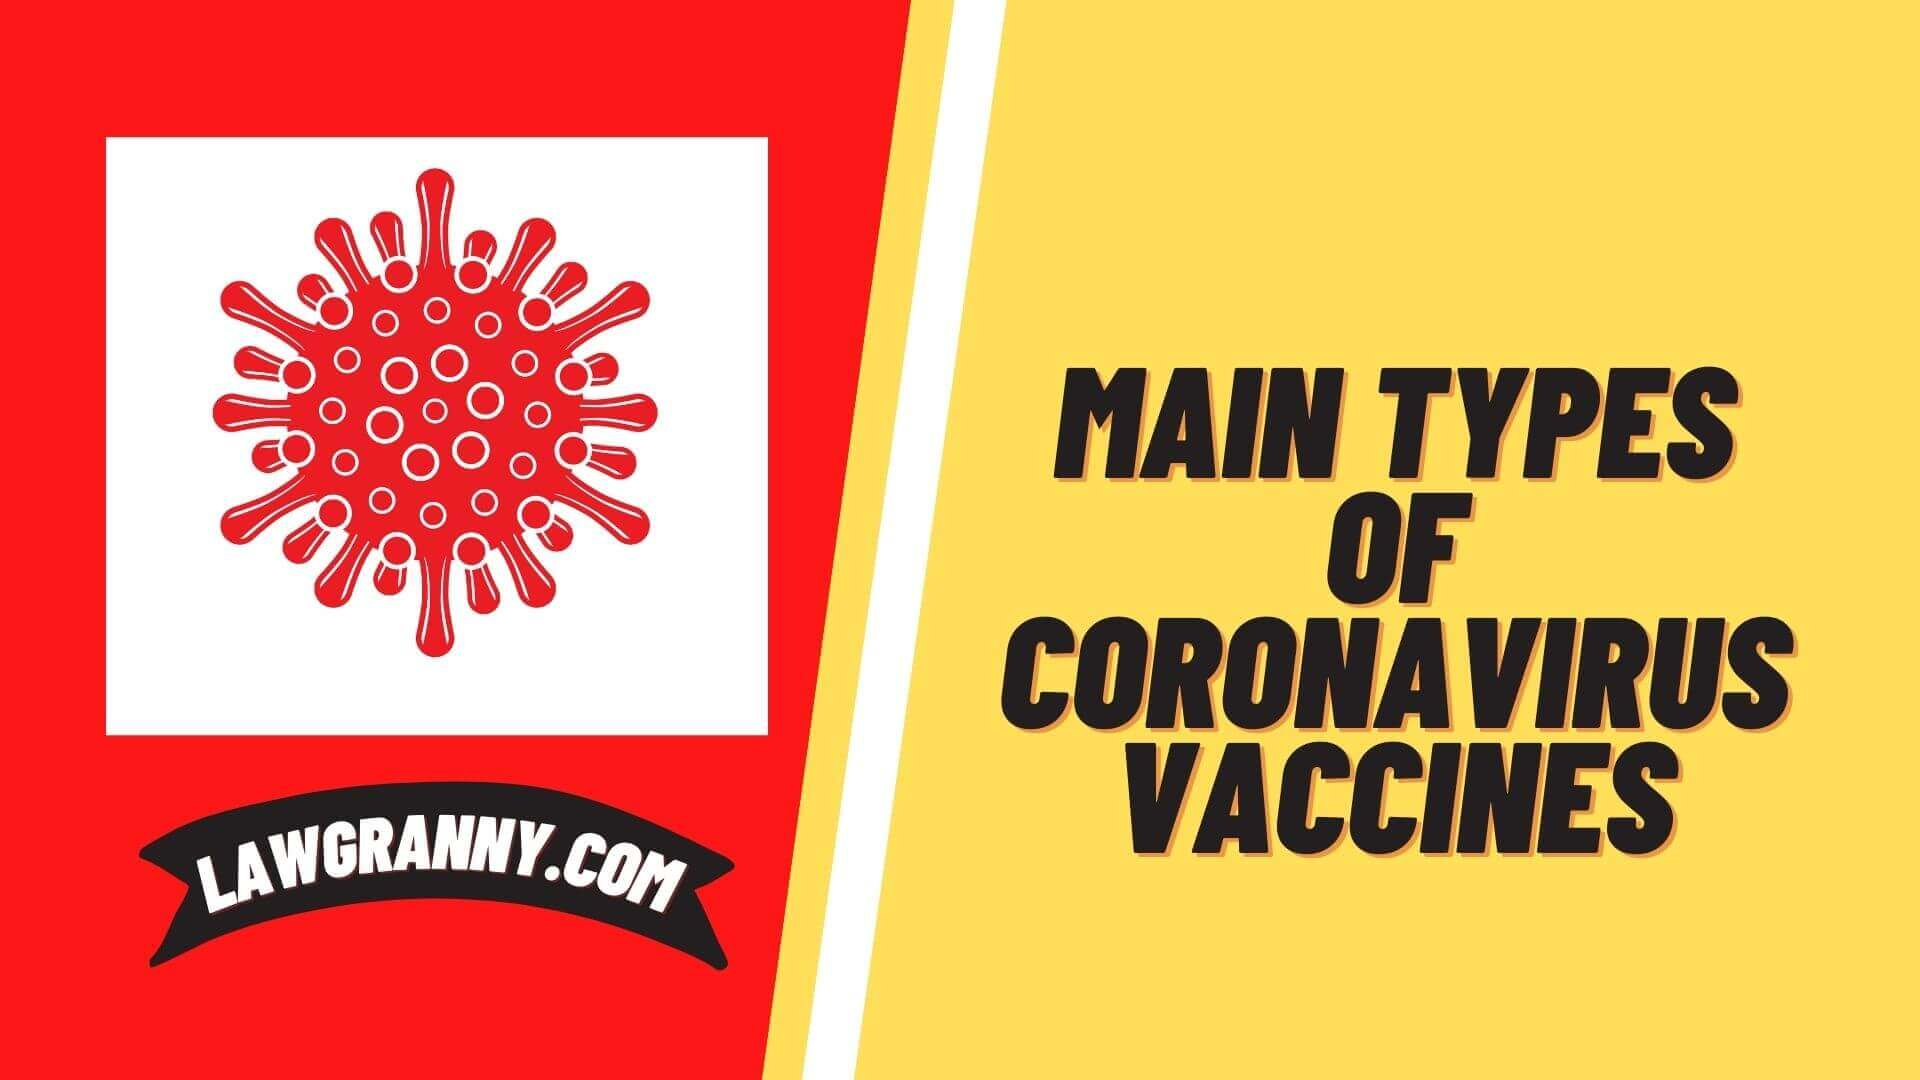 Main types of Covid vaccines